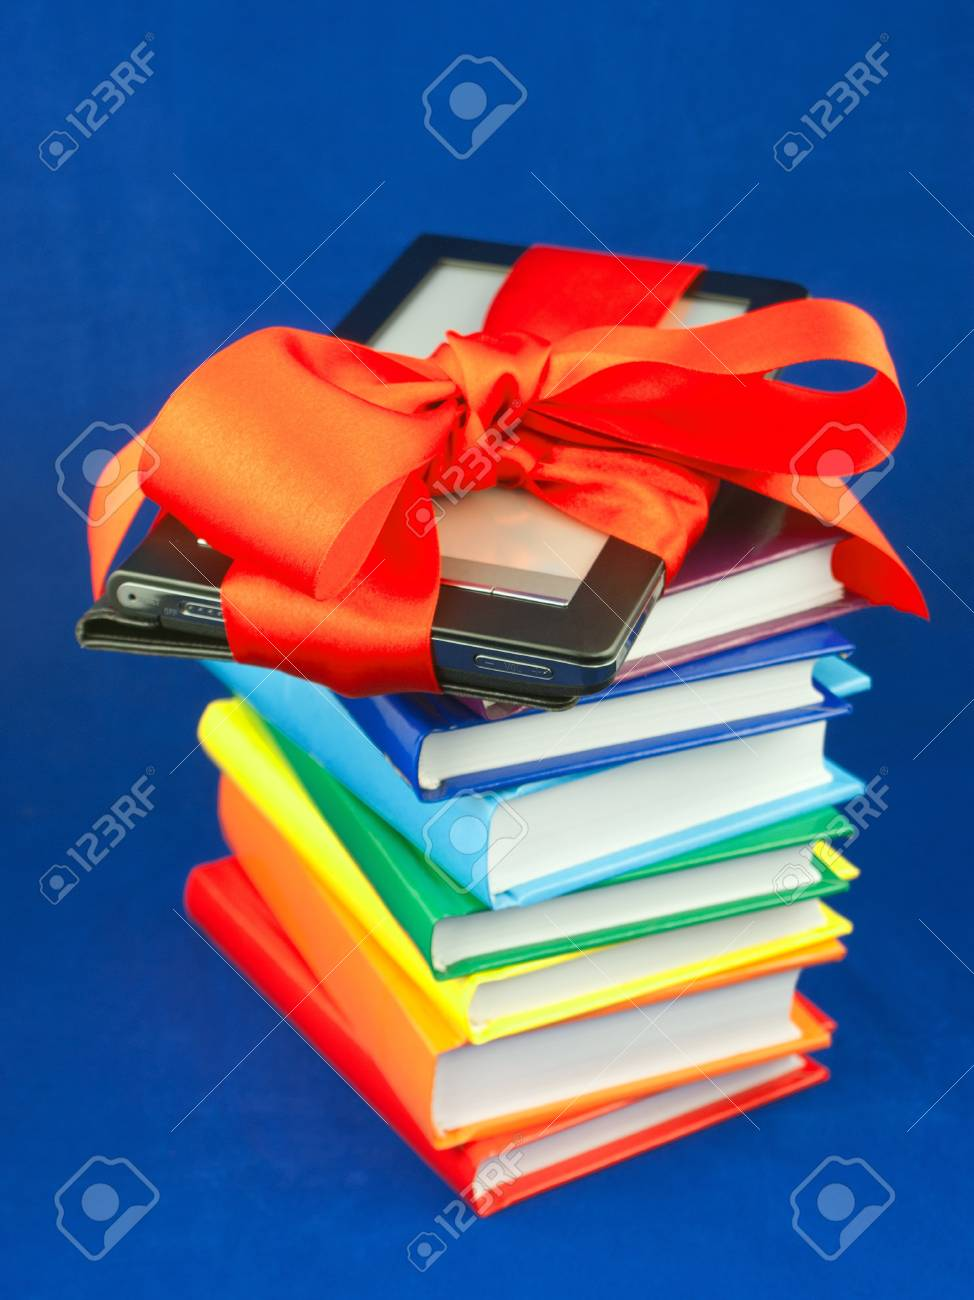 Electronic book reader tied up with red ribbon on the stack of books Stock Photo - 10612476